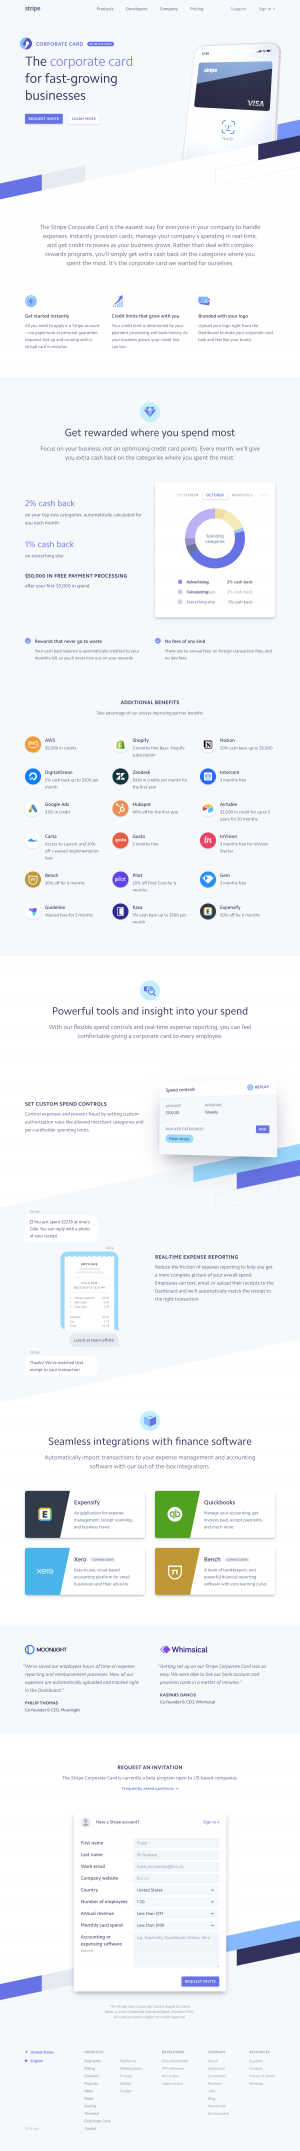 Stripe - Features page 2